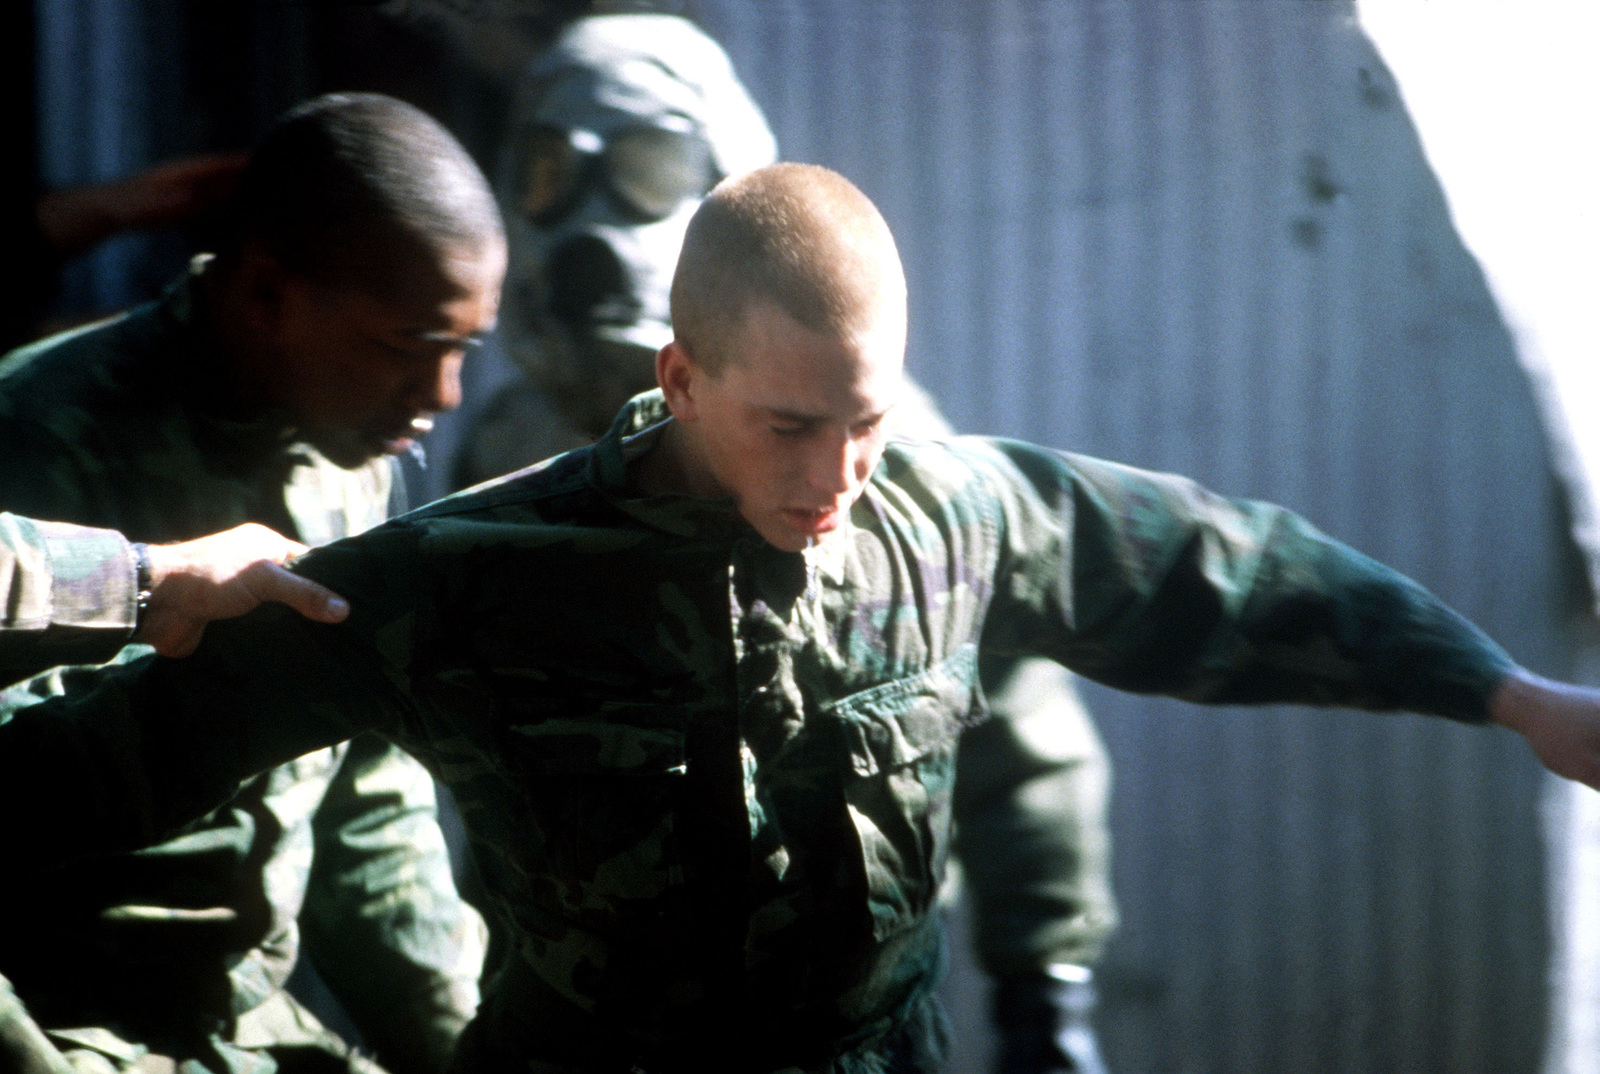 Recruits try to maintain their balance after being exposed to a chemical agent in a gas chamber. They are undergoing basic training at the Marine Corps Recruit Depot